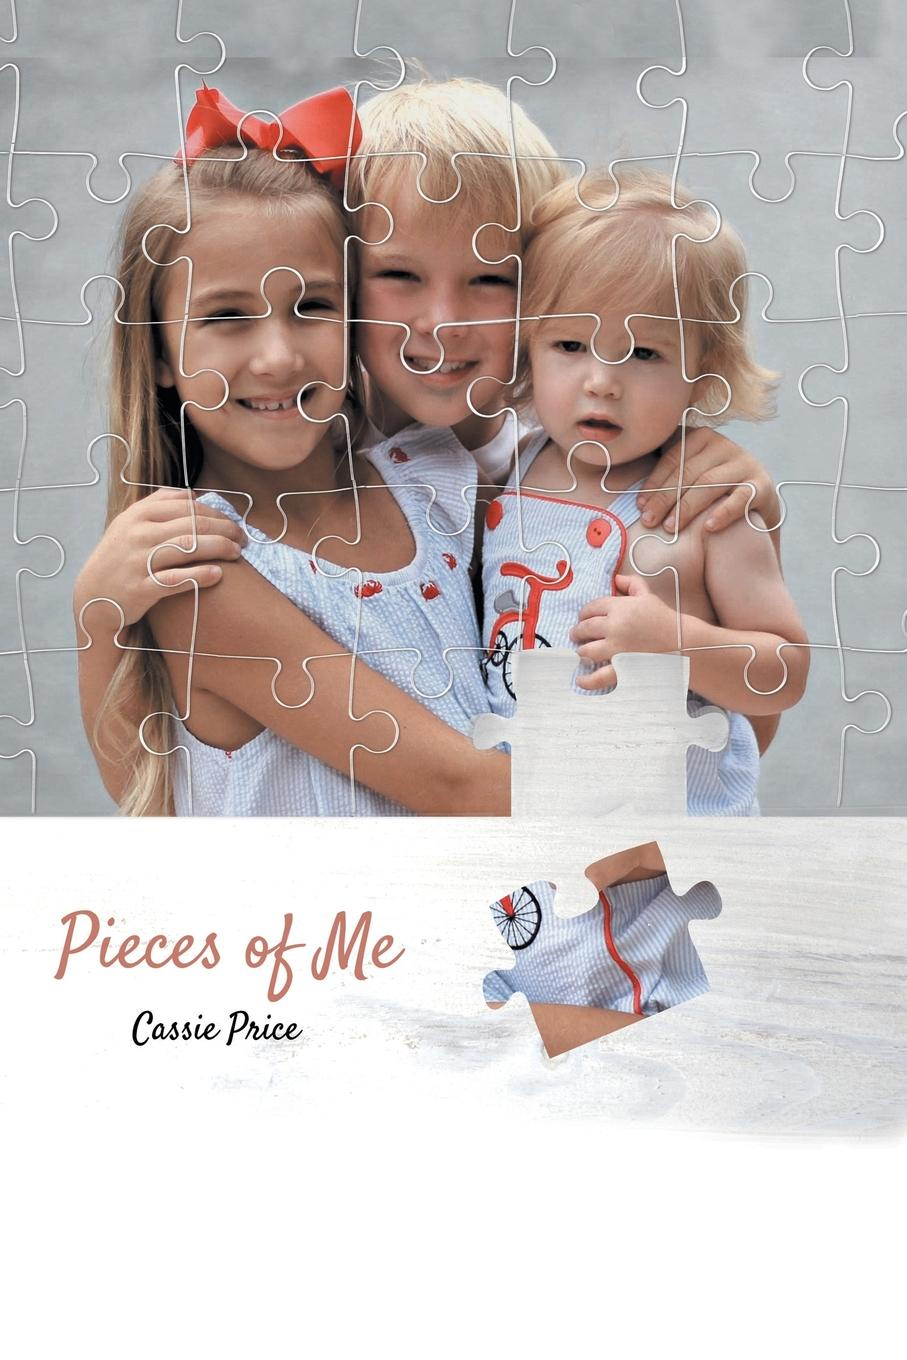 Cassie Price Pieces of Me a hundred pieces of me